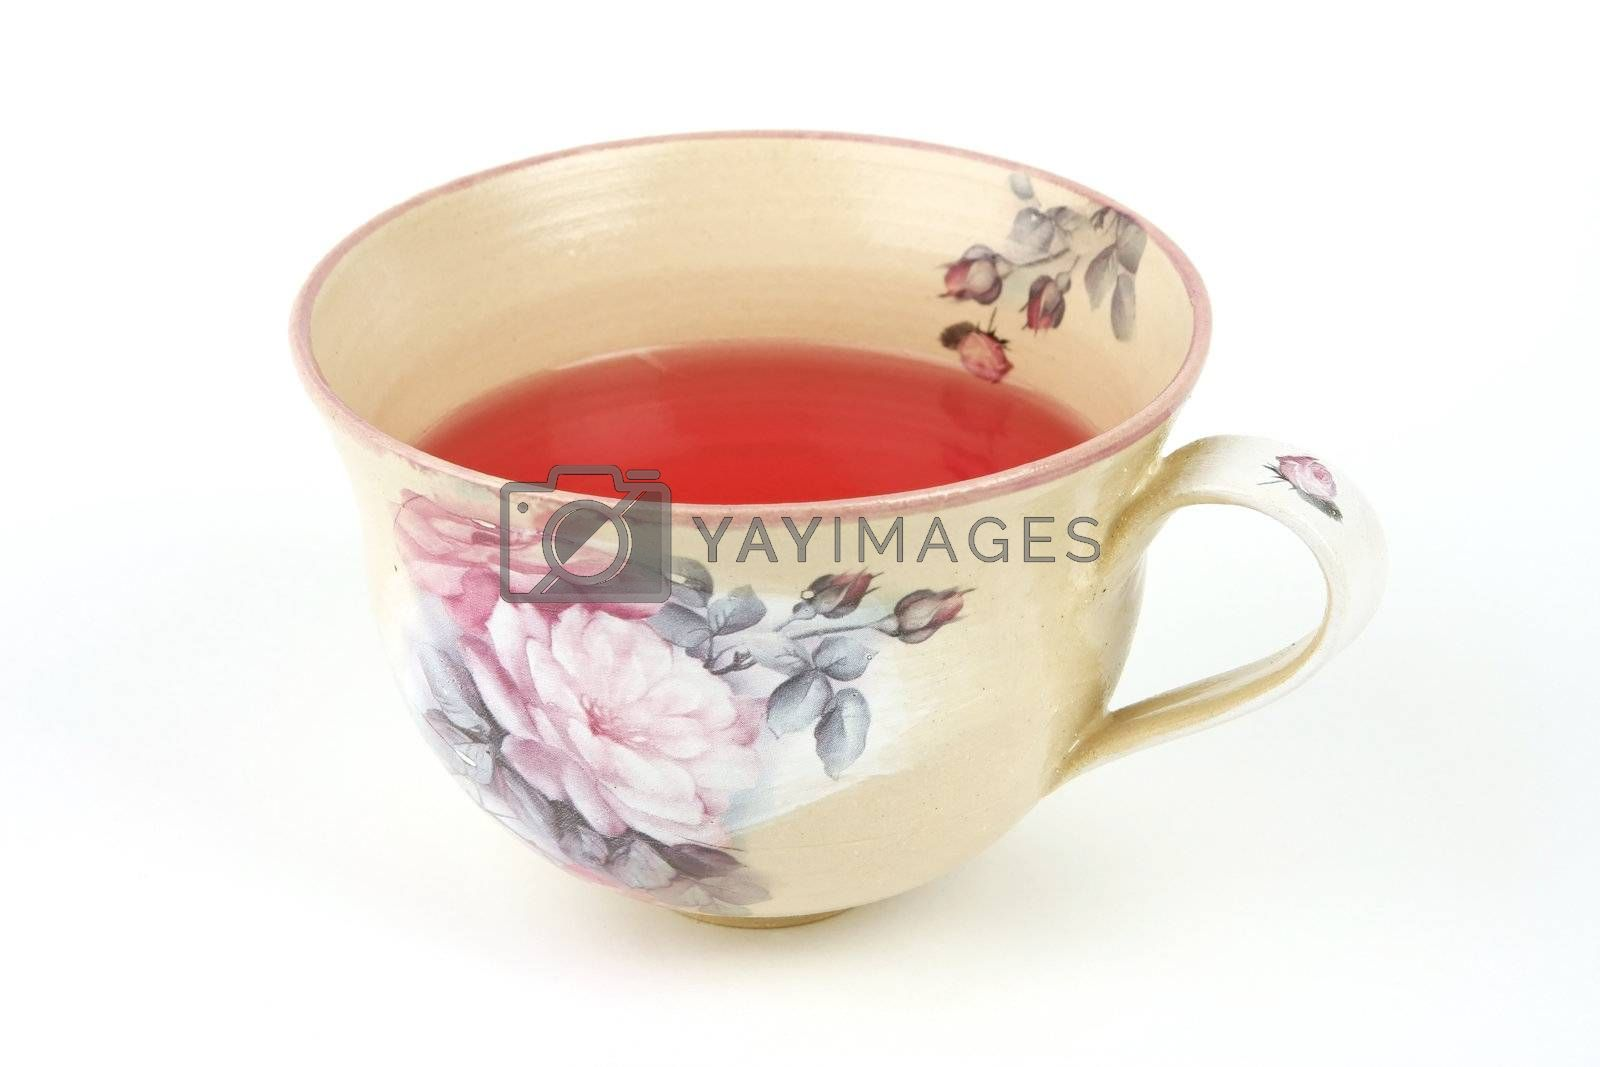 Royalty free image of Cup of tea by monicajohansen